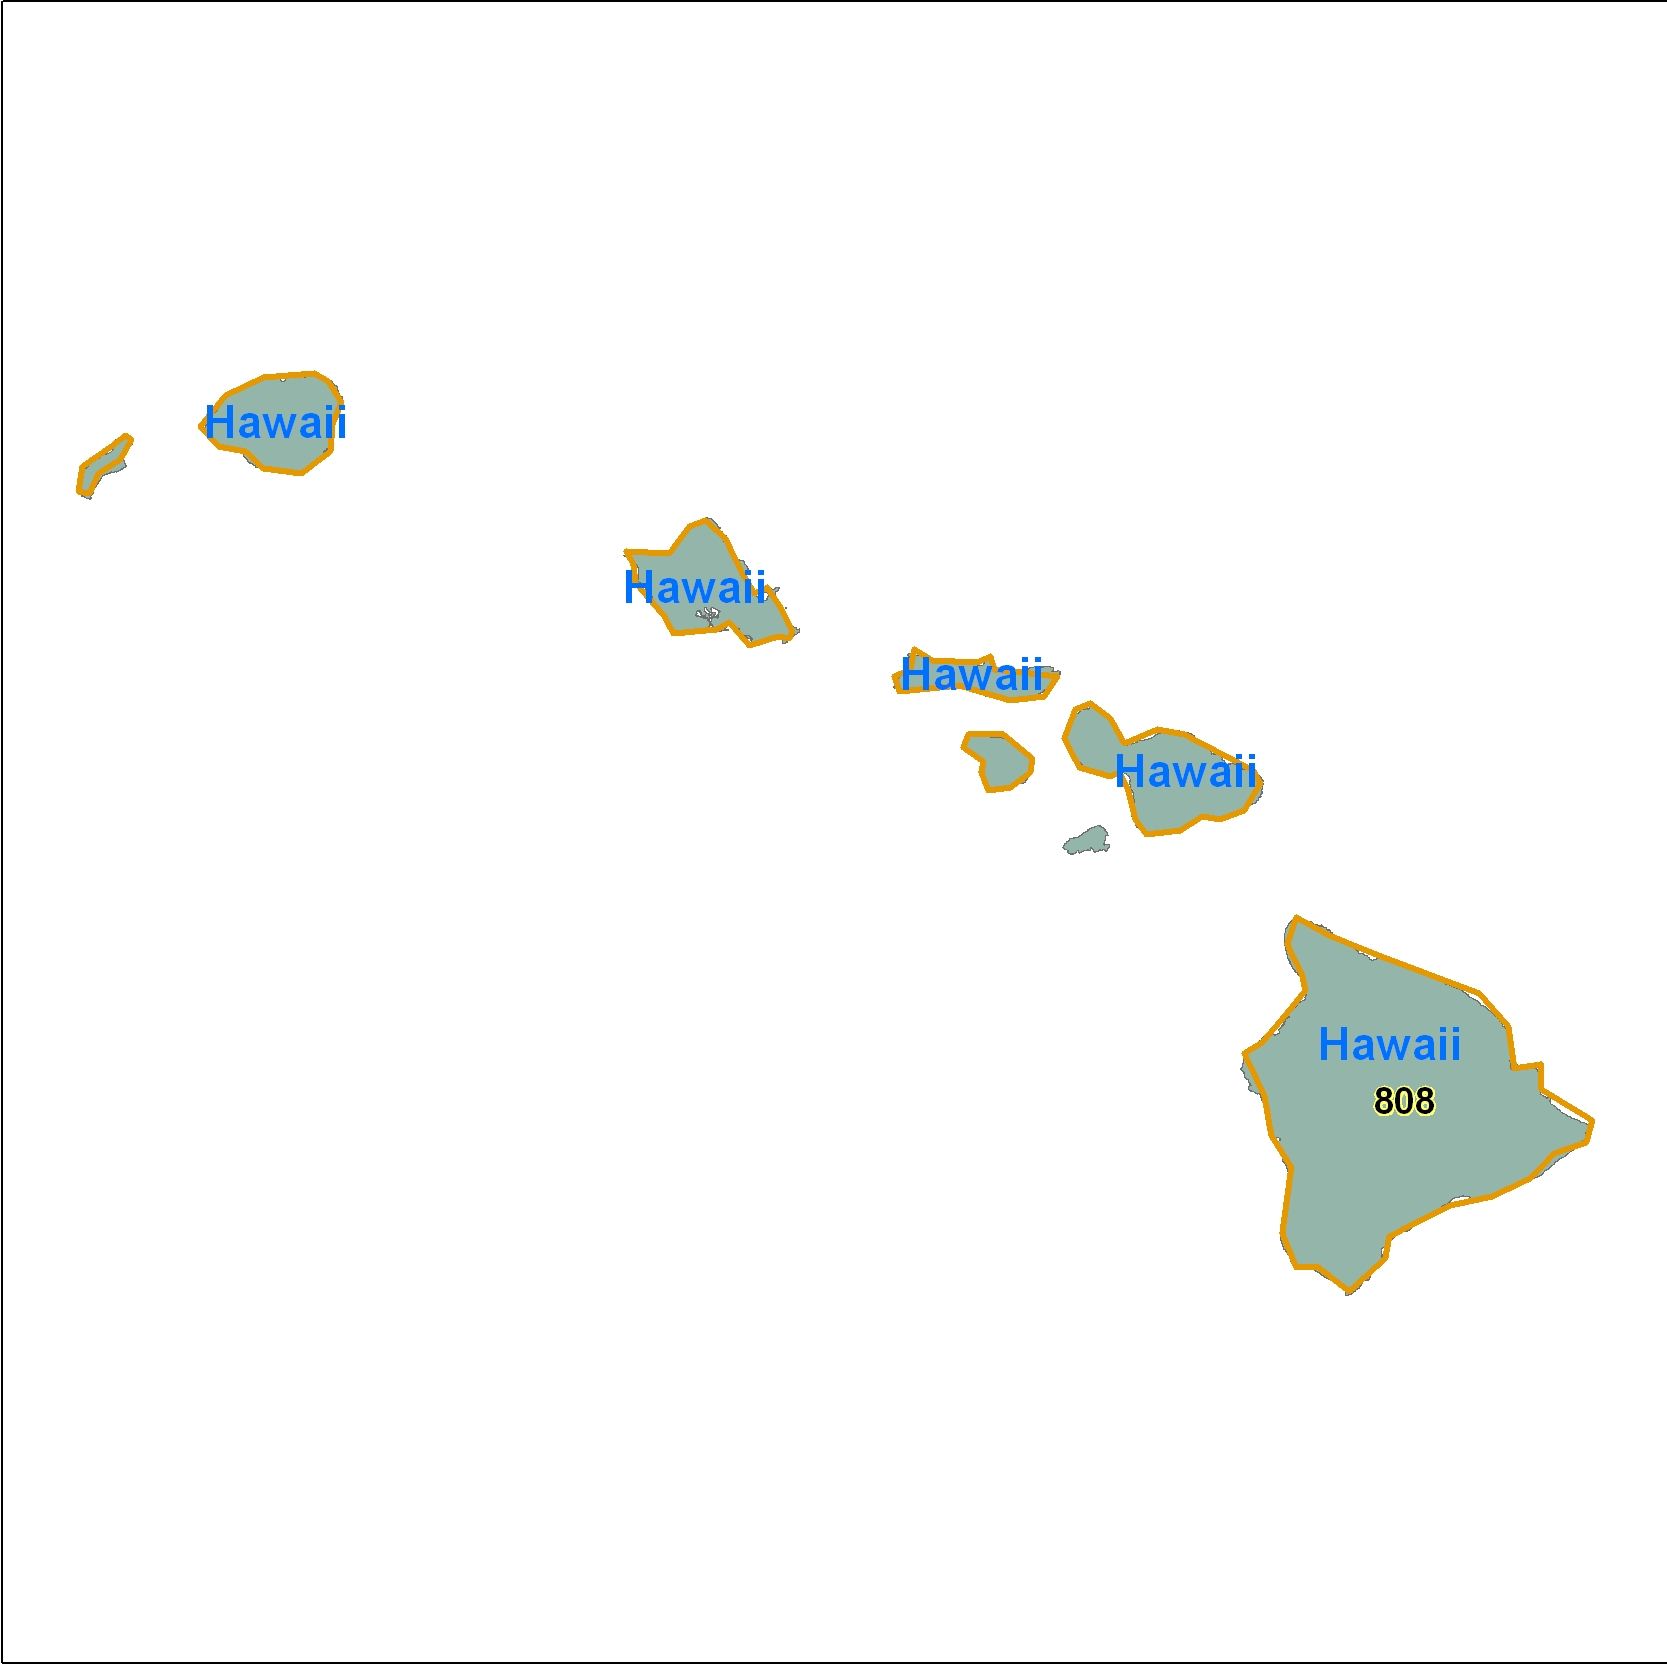 Hawaii (HI) Area Code Map